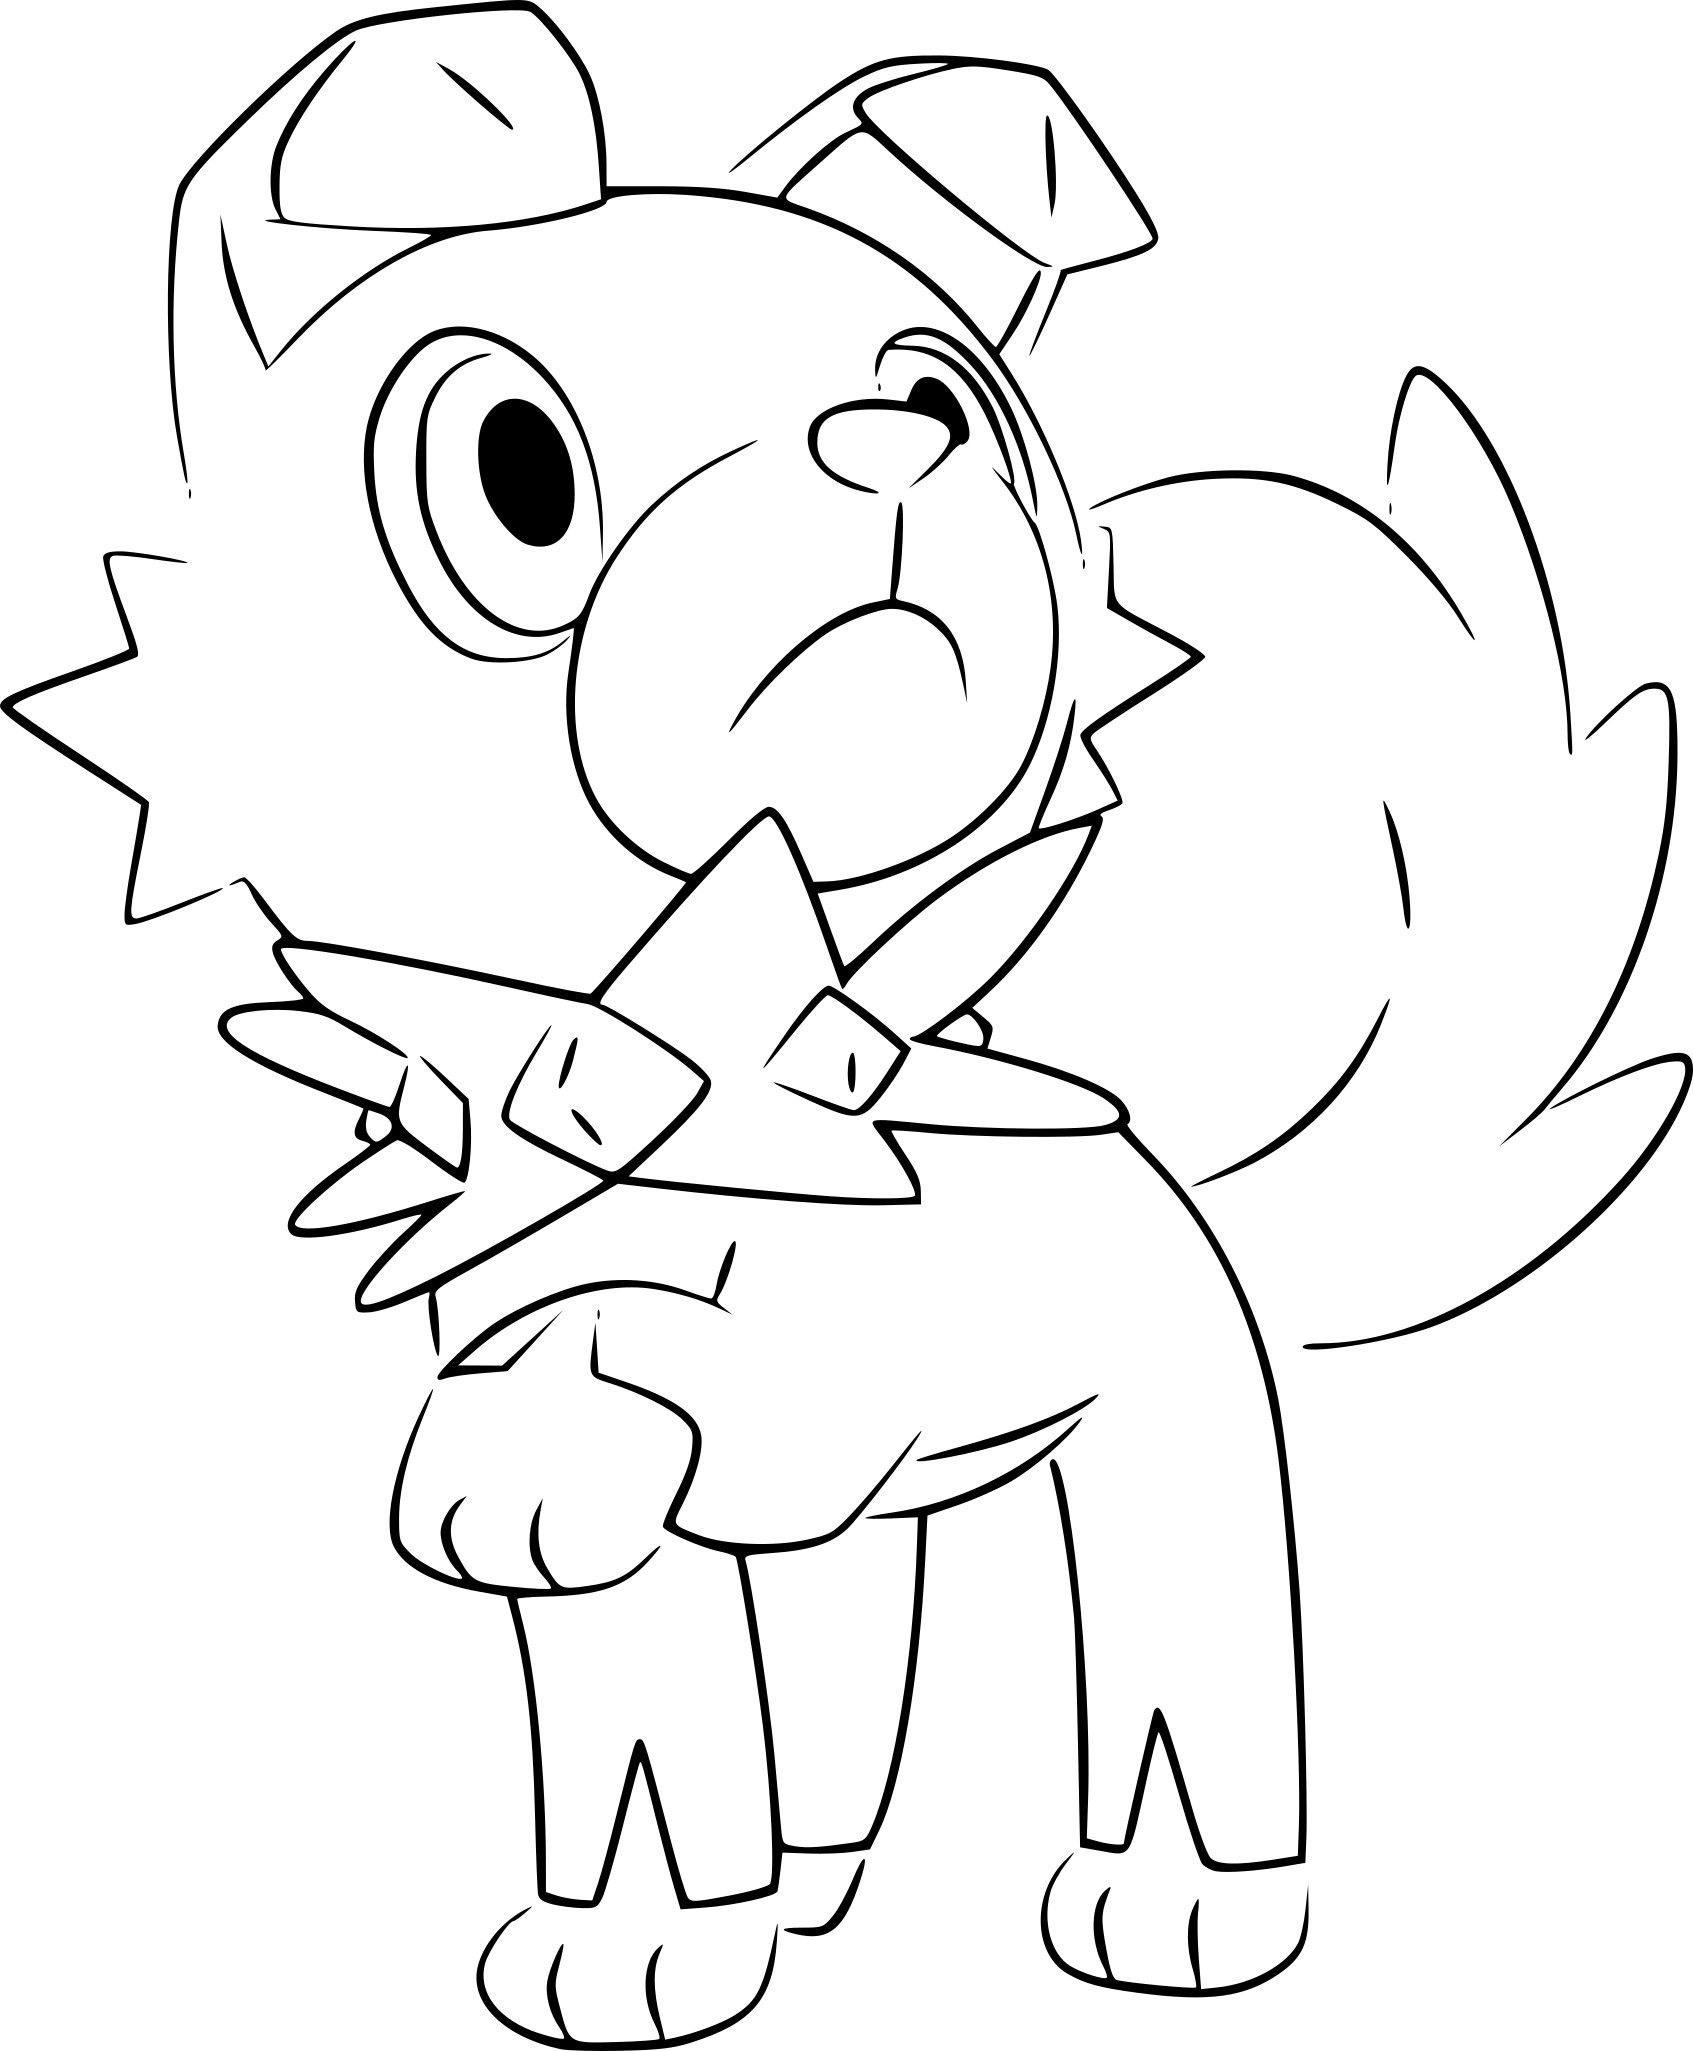 Pokemon Rockruff Coloring Pages Through The Thousand Pictures On The Net Concerning Pokemon Rockr Pokemon Coloring Pages Pokemon Coloring Moon Coloring Pages [ 2051 x 1693 Pixel ]